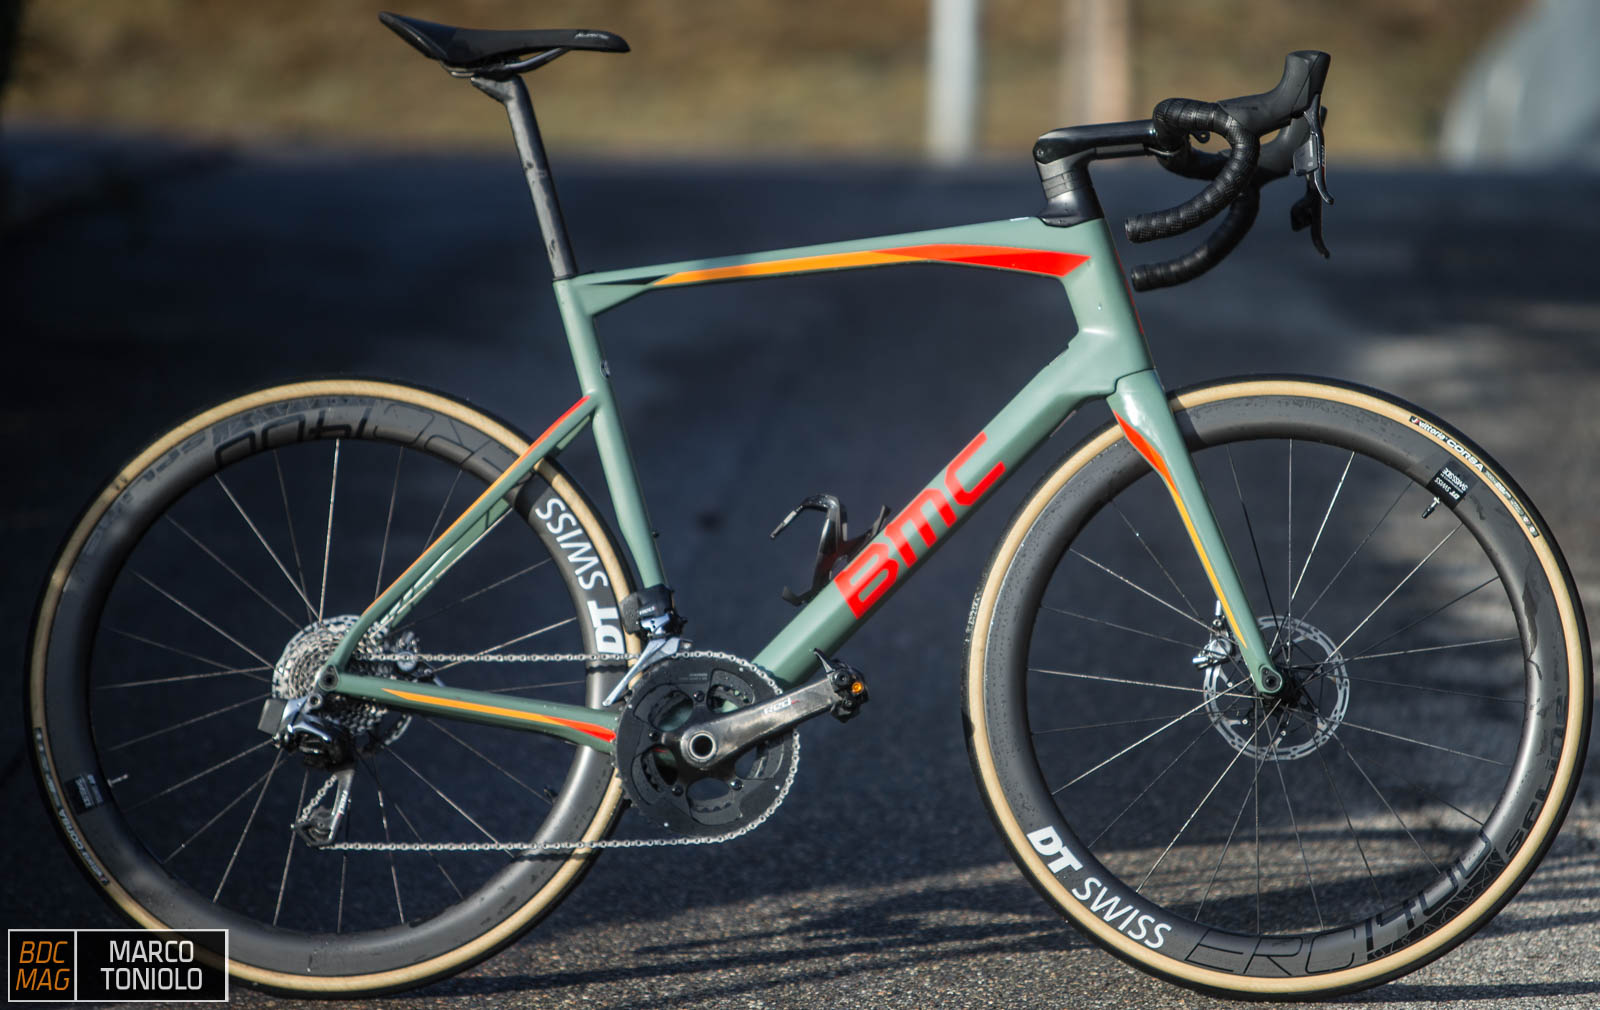 [Test] BMC RoadMachine 01 TWO